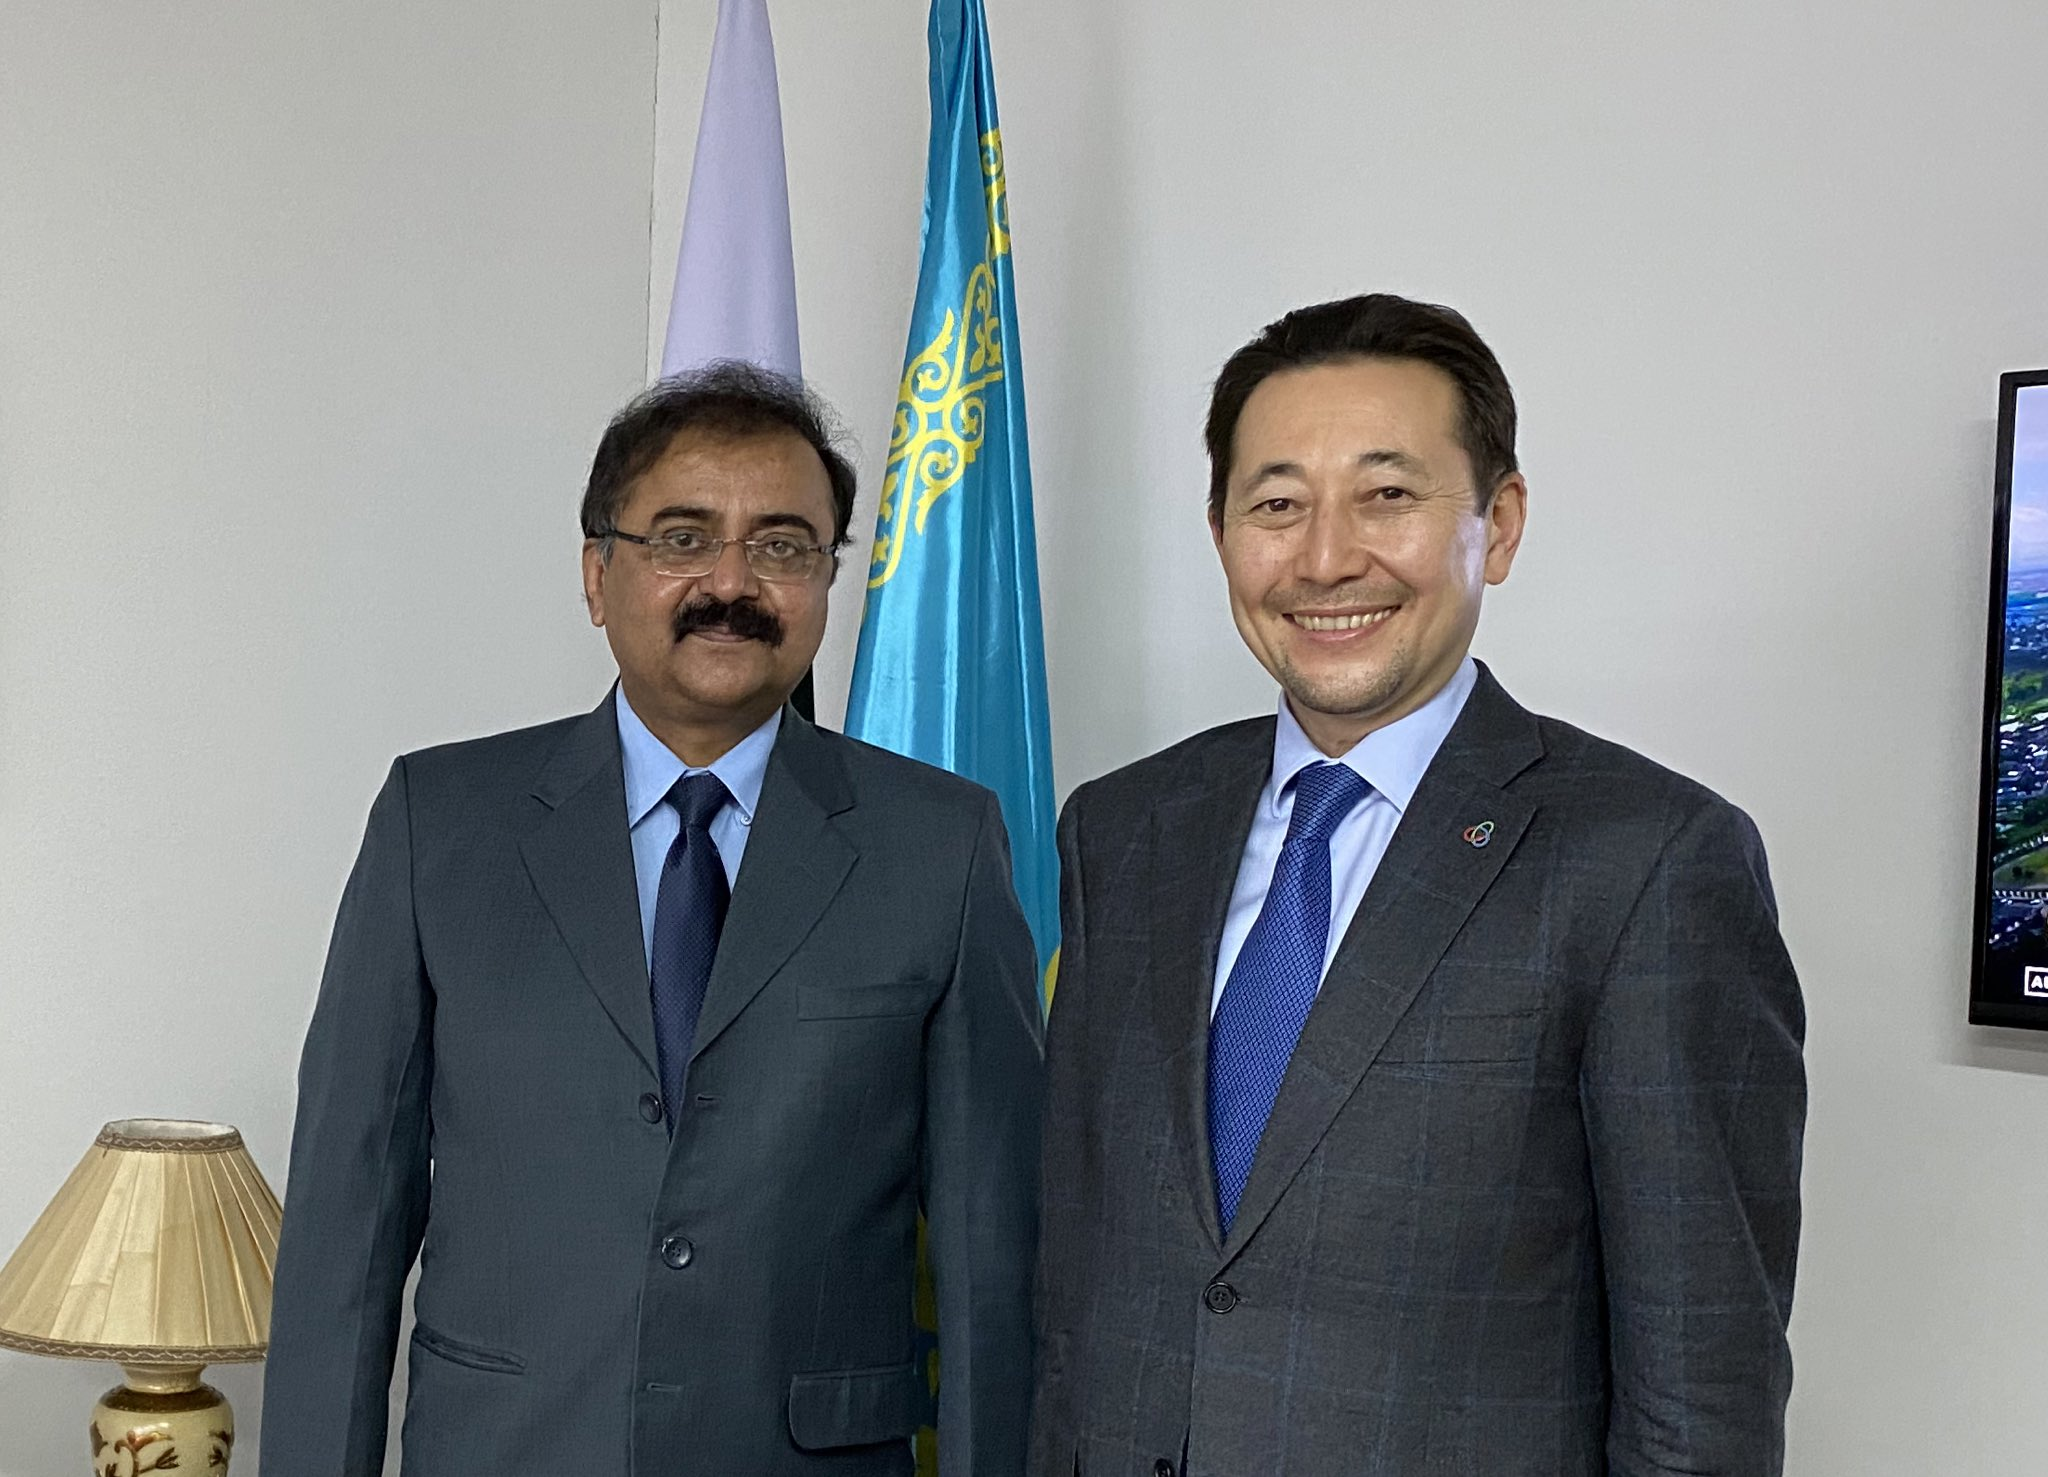 Executive Director of the CICA Secretariat Kairat Sarybay and Ambassador of the Islamic Republic of Pakistan Dr. Sajjad Ahmed Seehar discussed opportunities for the increased cooperation within CICA at a warm and friendly meeting held in Nur-Sultan on February 03, 2021.